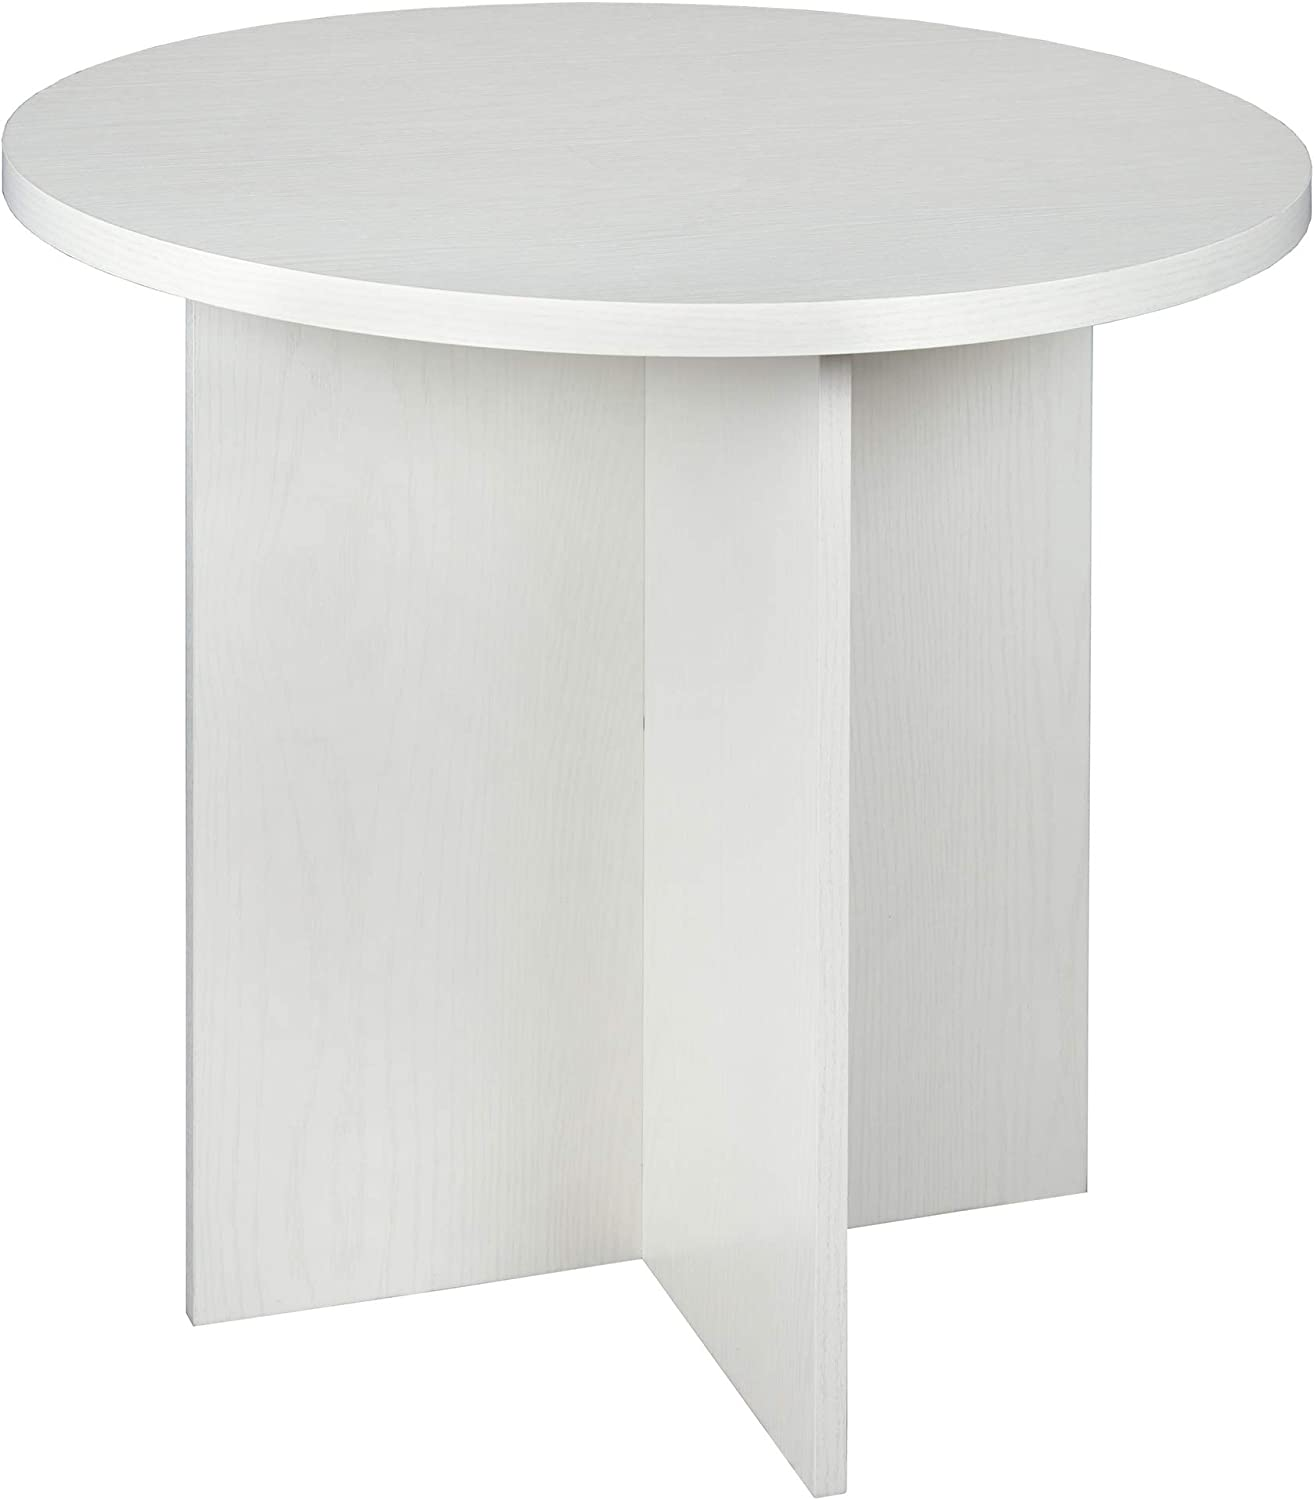 """Niche Mod Round Table with No- with No-Tools Assembly, 30"""", White Wood Grain"""